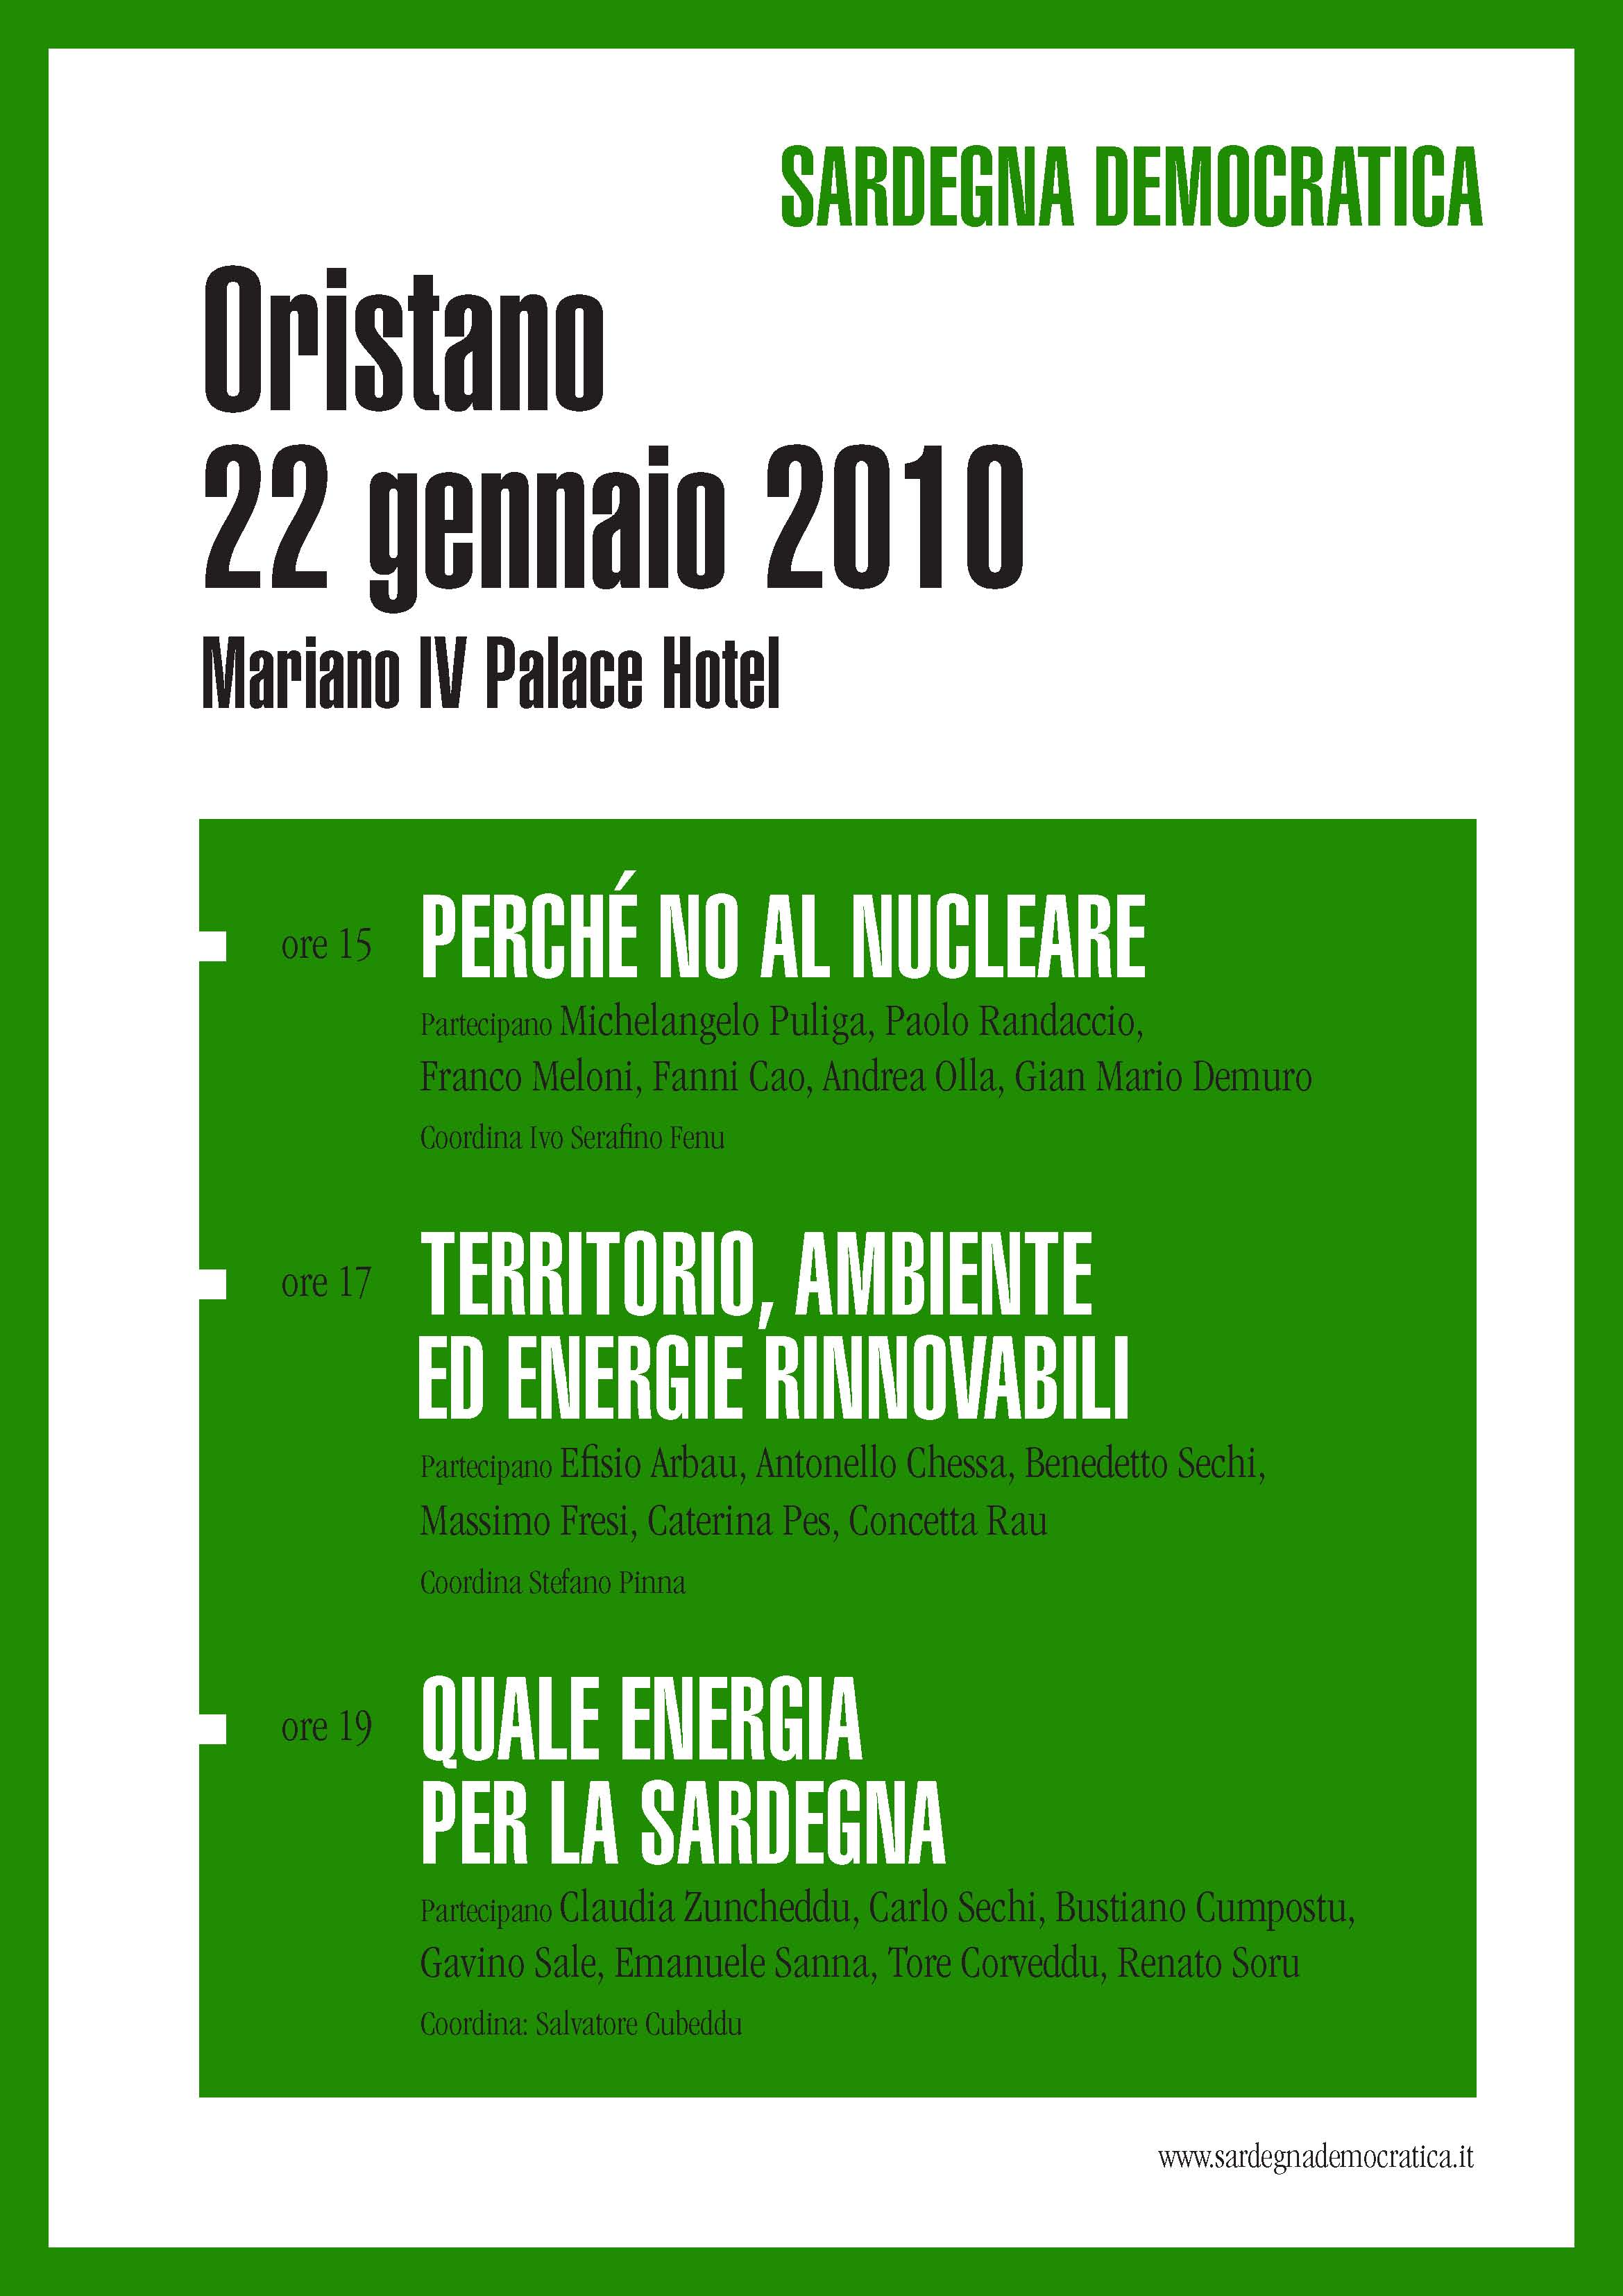 sd nucleare